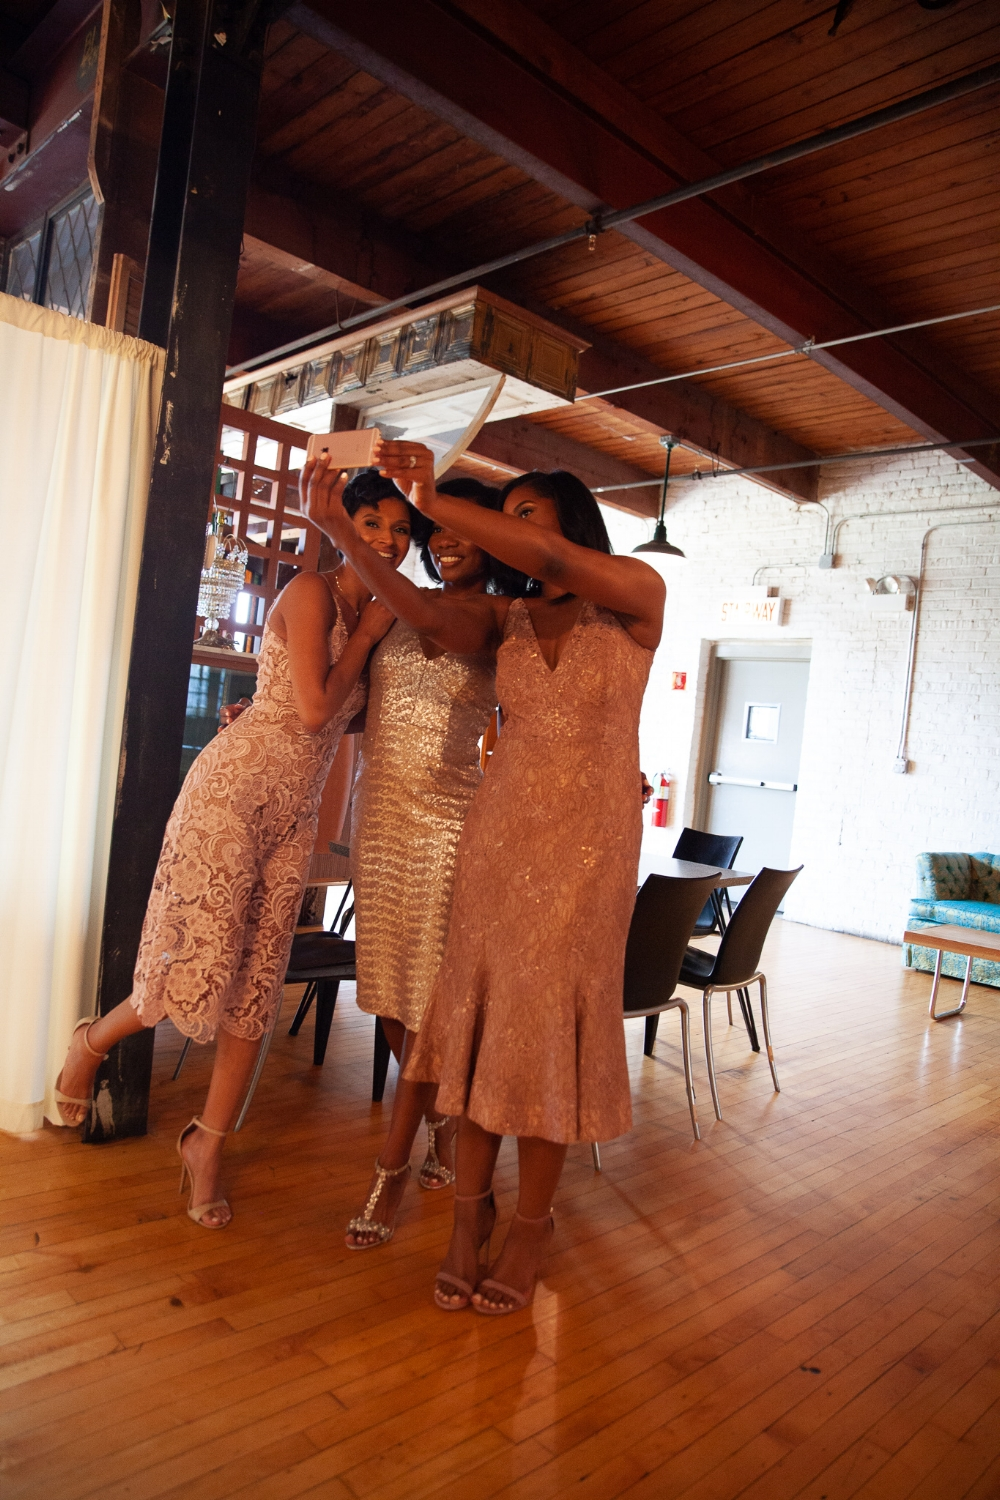 Refusing to lose myself in becoming a new mom | Honeycomb Moms |I'm having way too much fun with longtime friends Carletha Beavers and Charniese Miller. This was taken just before the festivities started at Nicole's wedding. BRADLEY MURRAY / bradley@square56.com